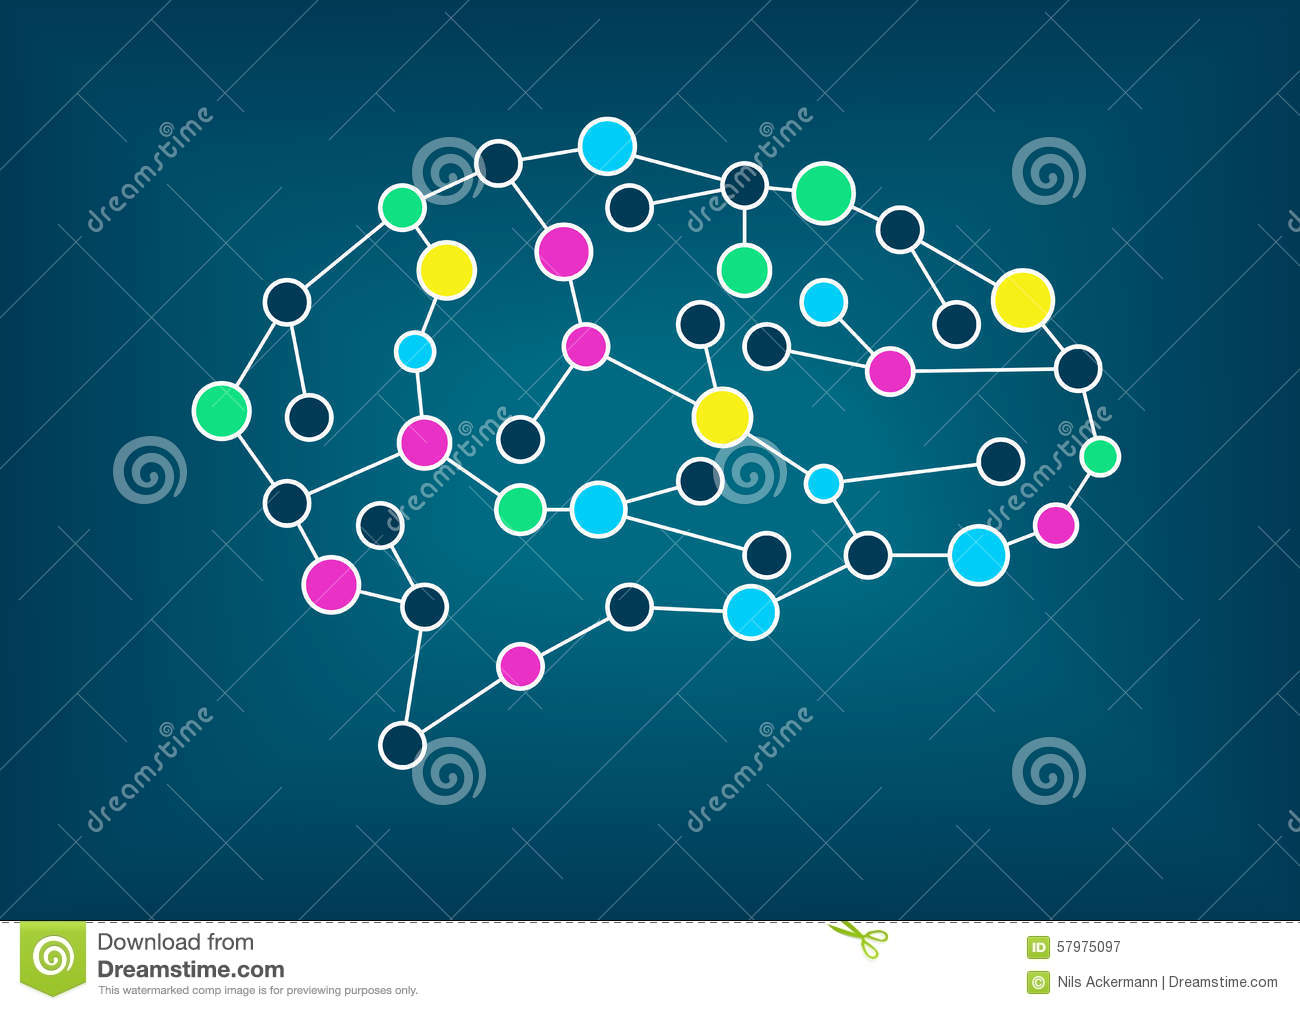 Vector illustration of brain. Concept of connectivity, machine learning, artificial intelligence